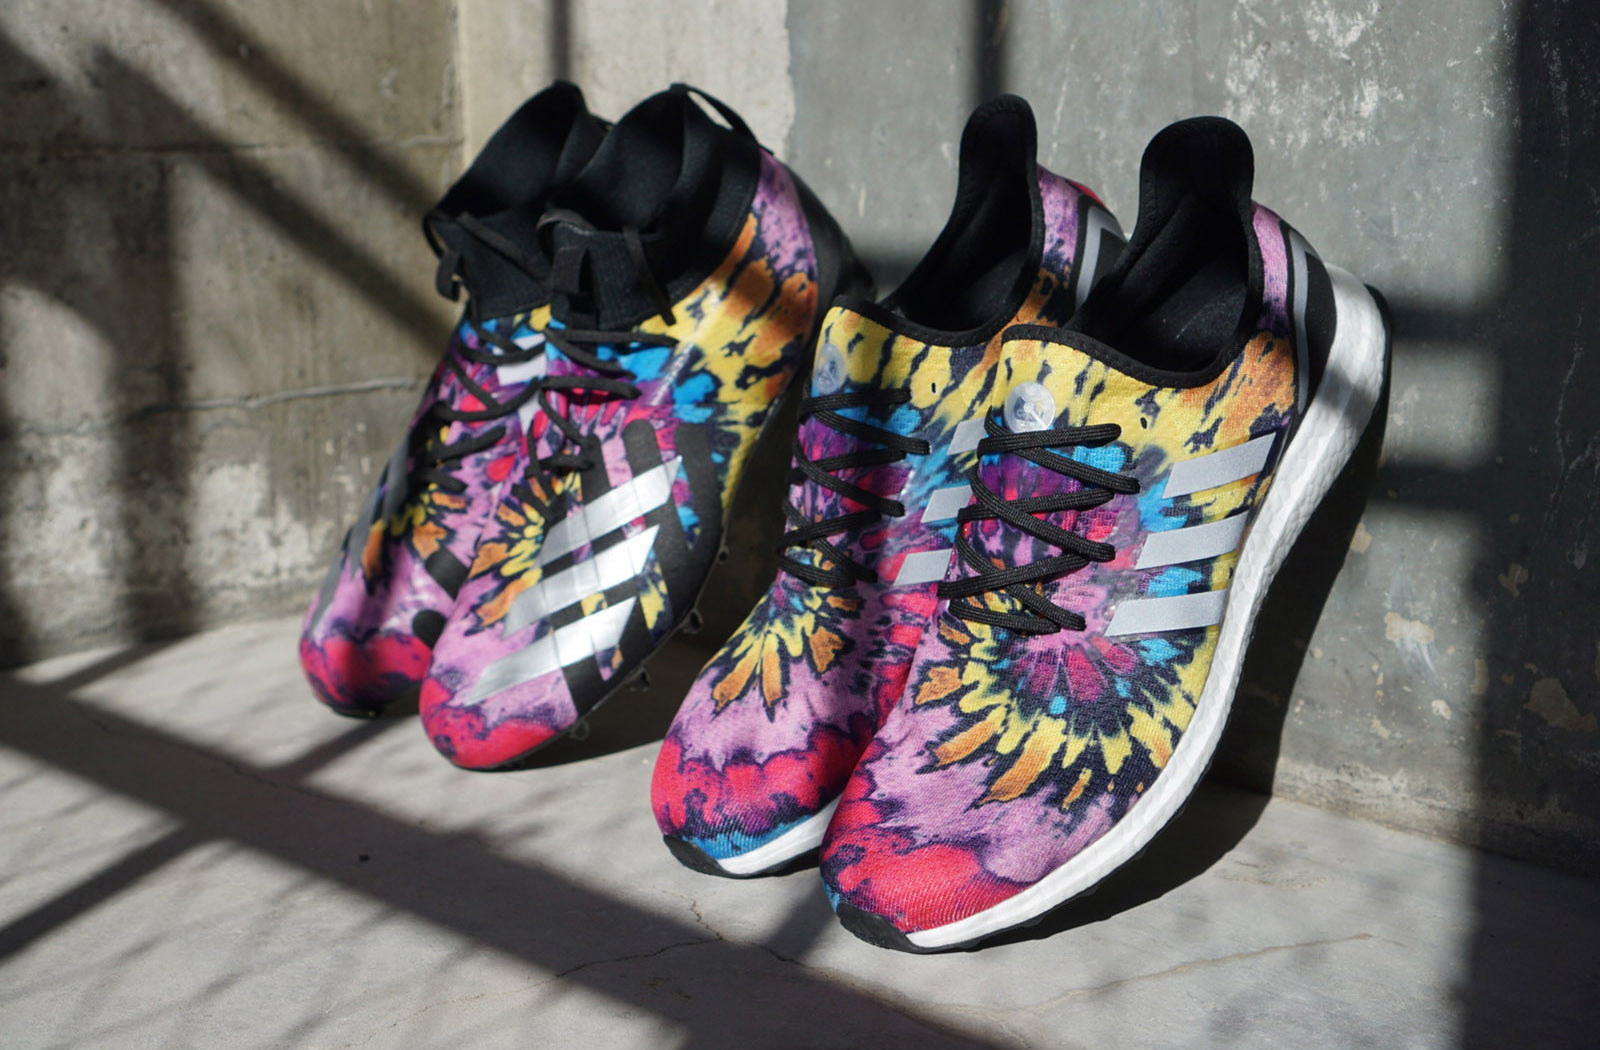 30e17fdd0e2 adidas and Foot Locker, Inc. Partner to Re-Envision the Future of  Creativity and Speed